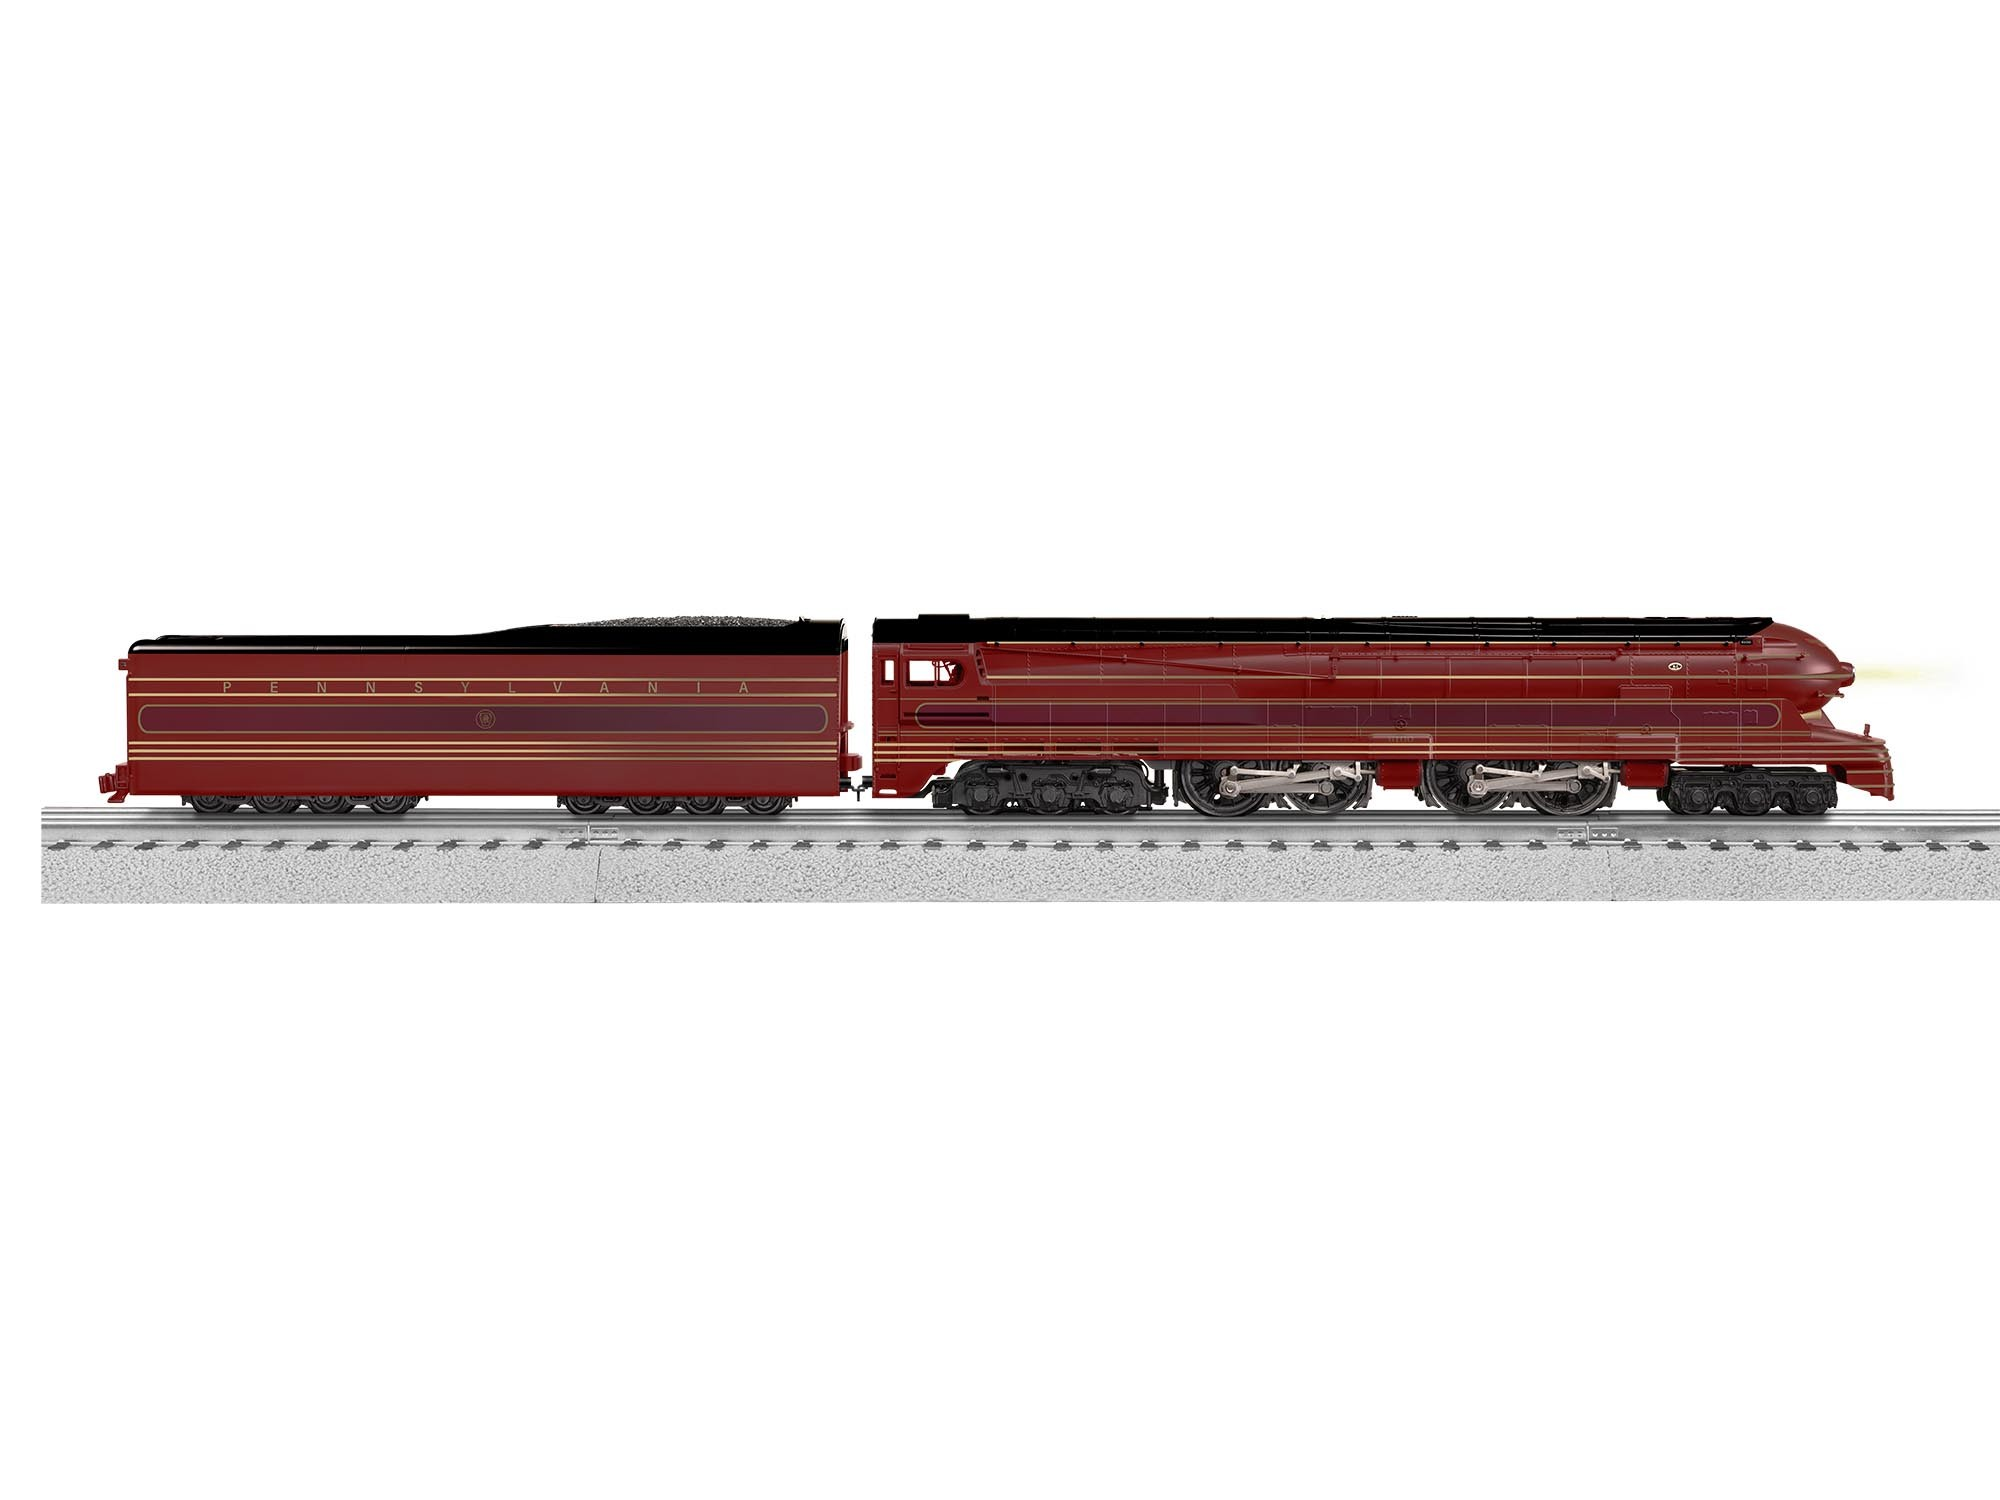 2131040  PRR S1 6-4-4-6 #6100 - Tuscan Red